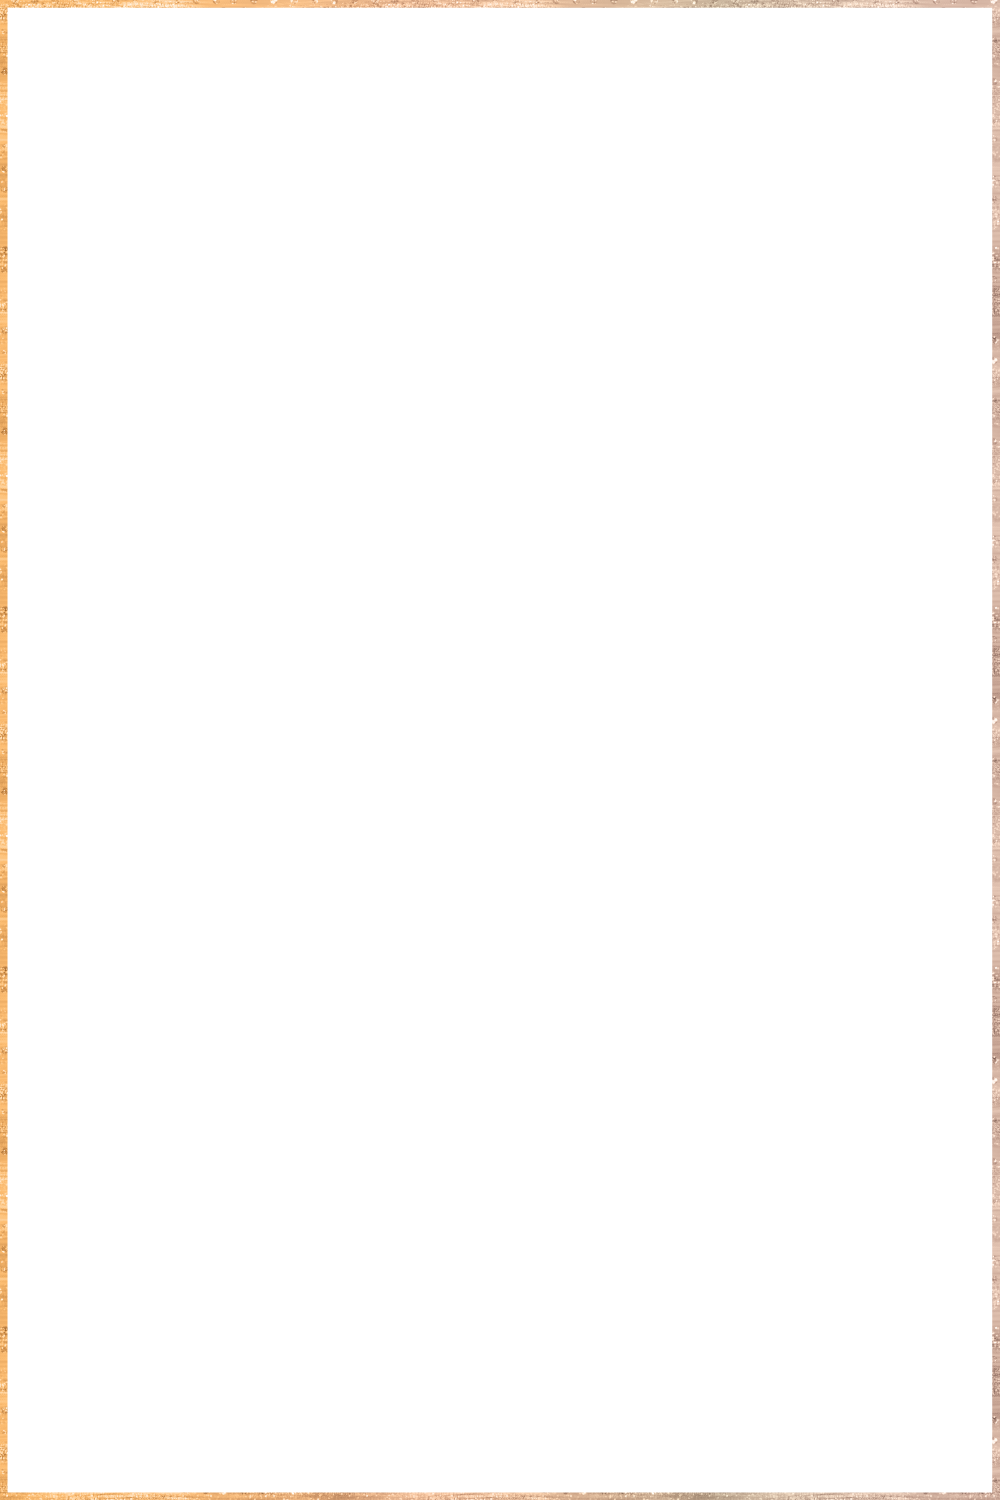 Thin Frame Png. Kelly Ann Events Brand